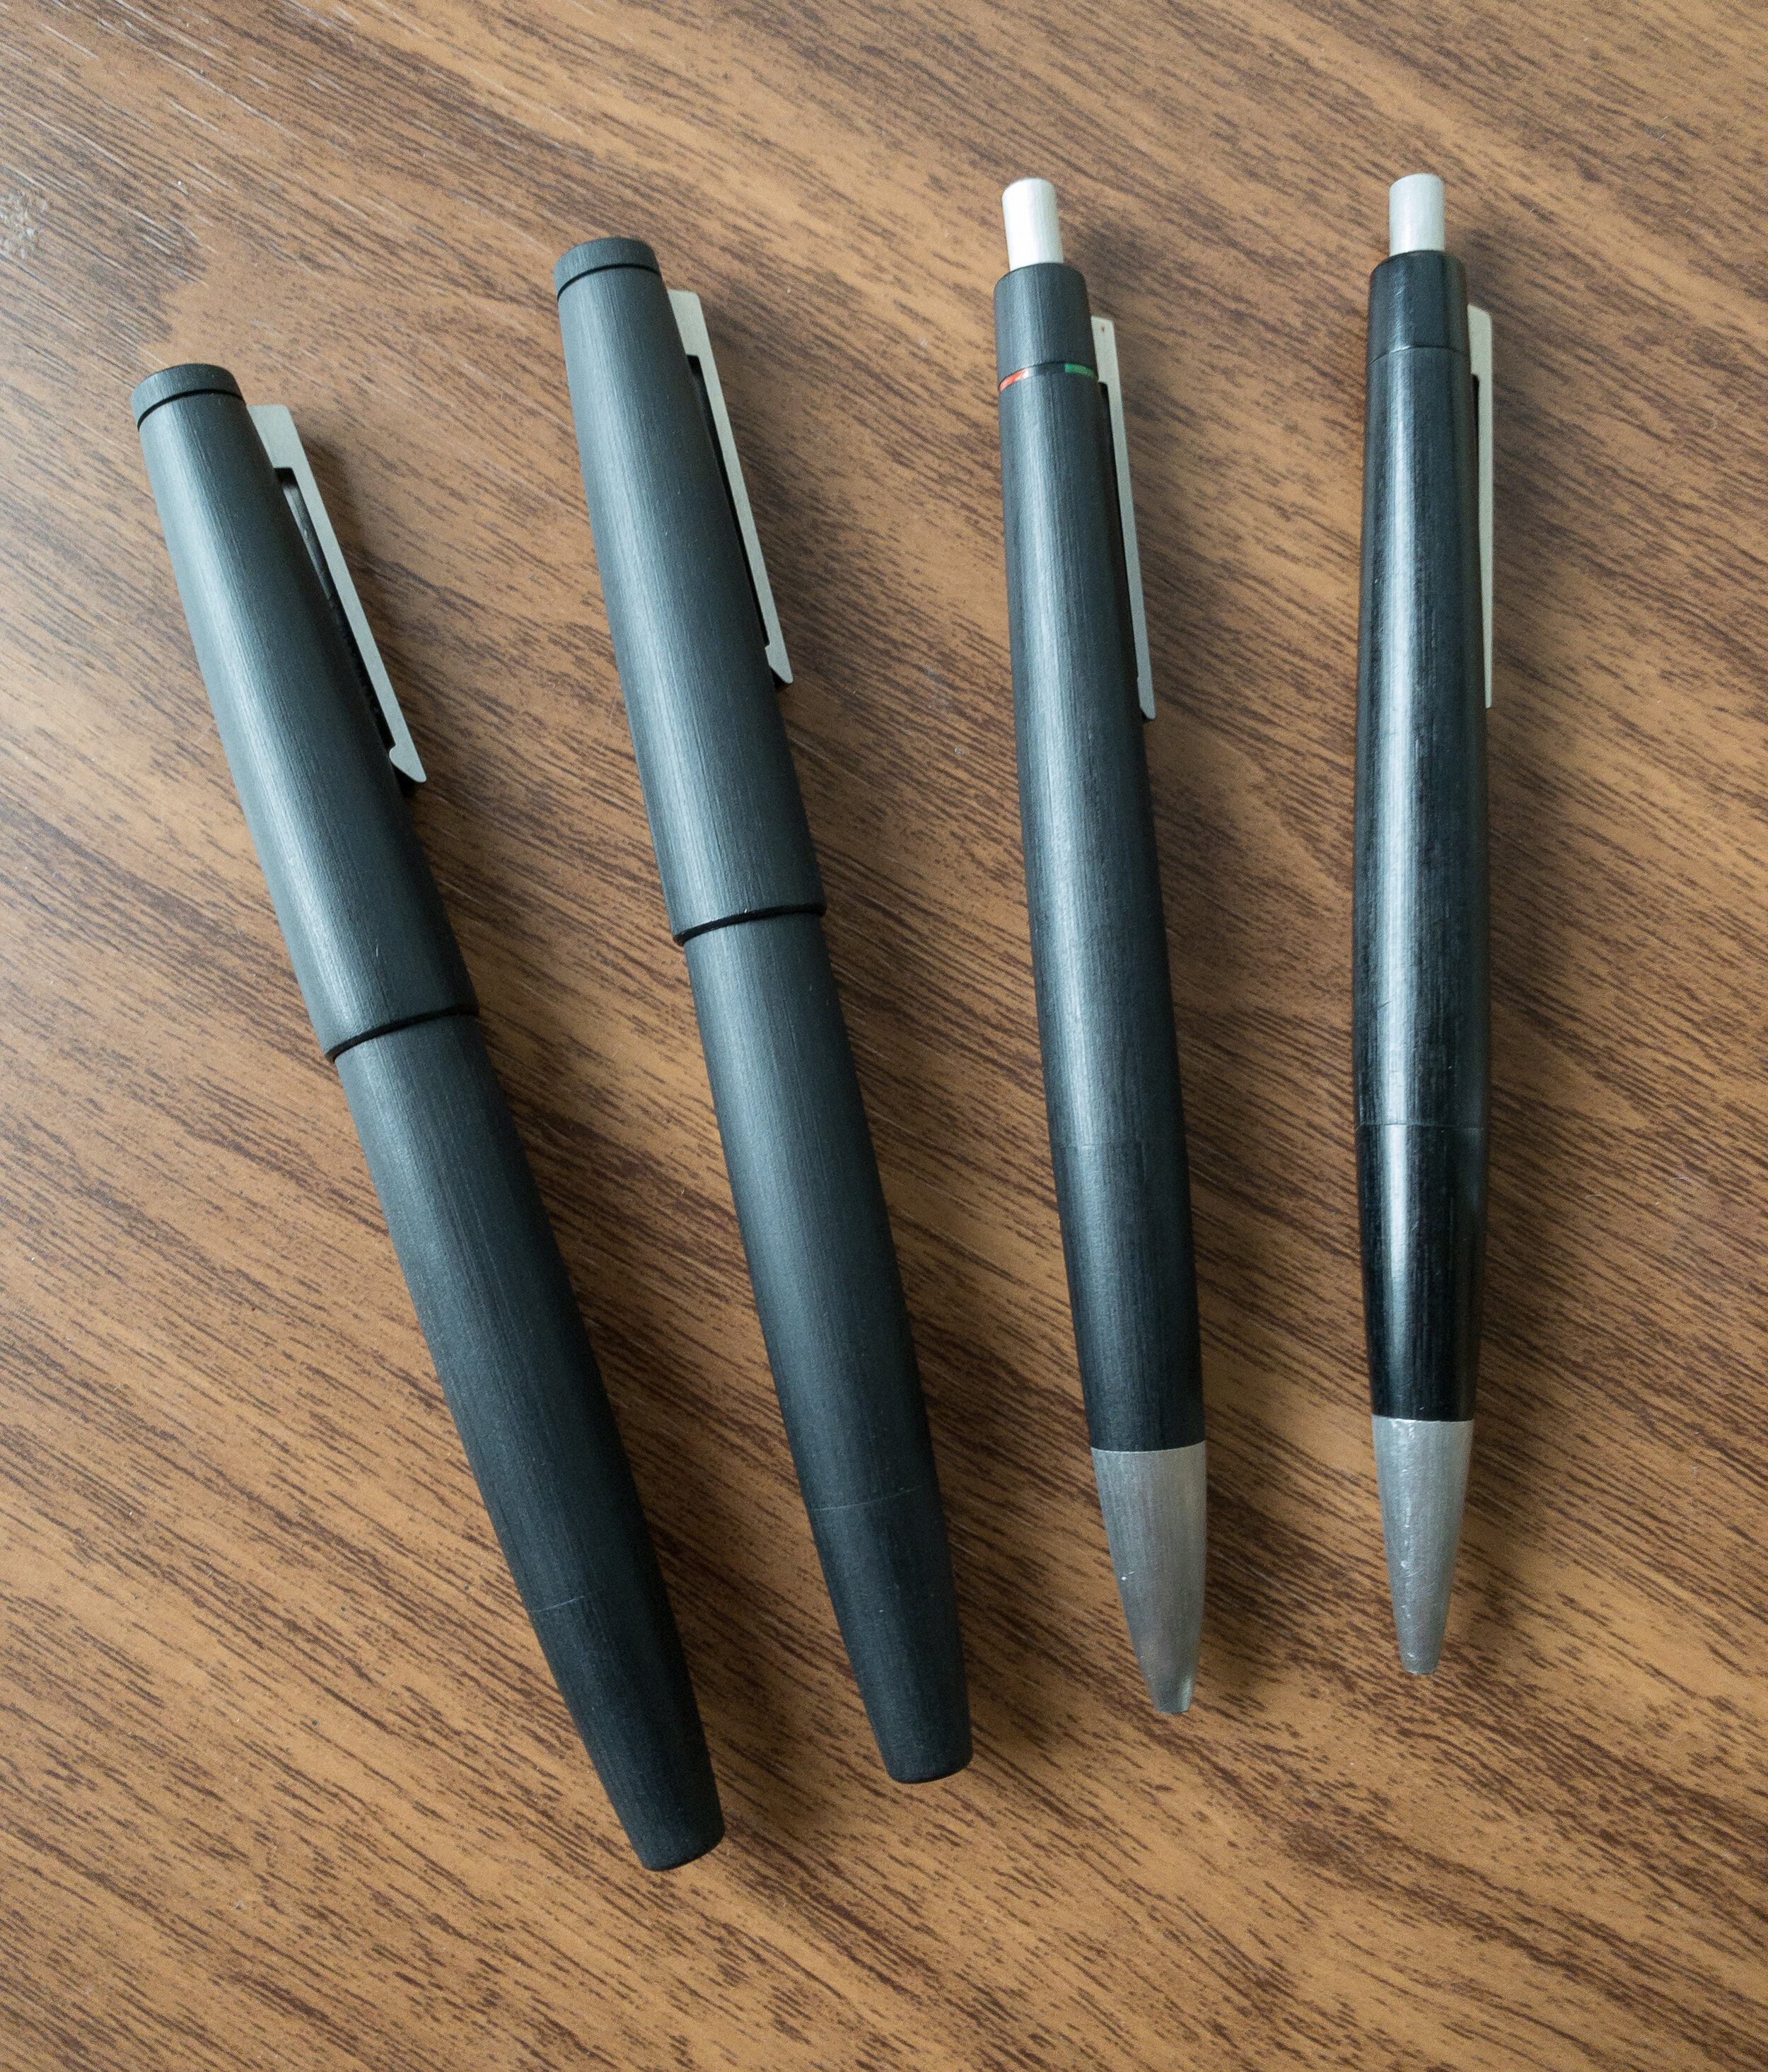 Will another Lamy 2000 be joining these soon? Maybe Friday….